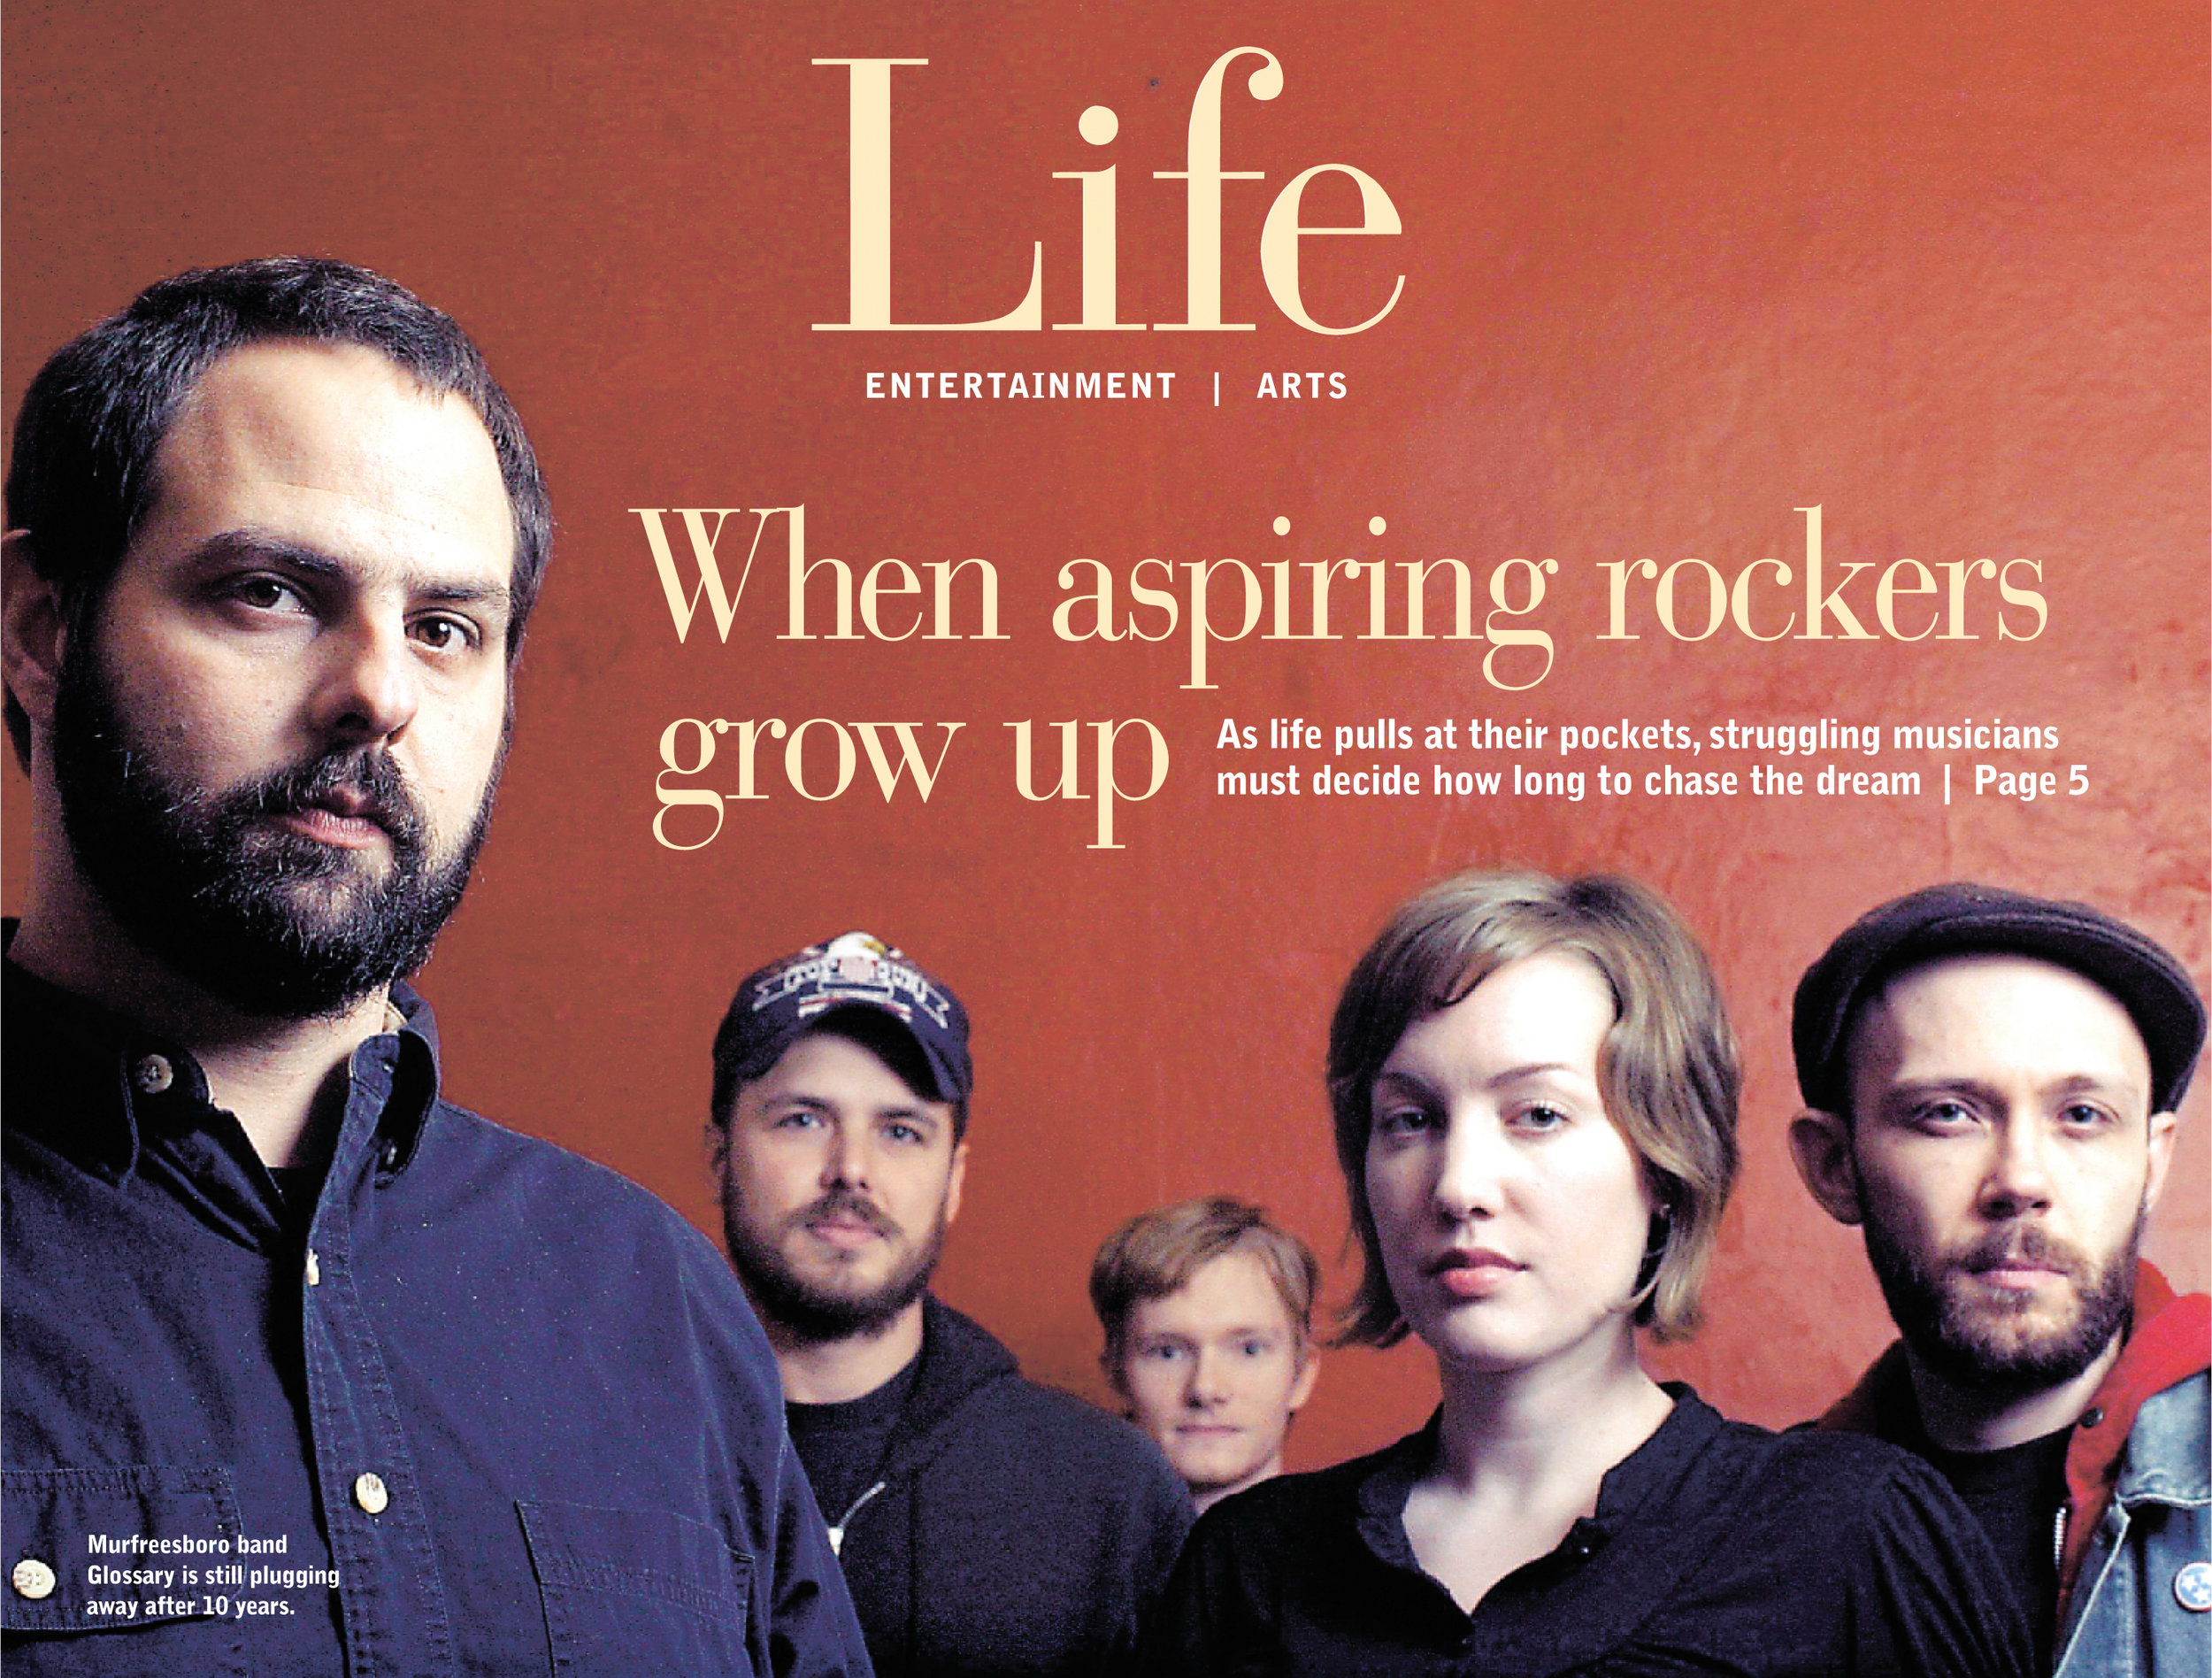 """""""Rock 'n' roll vs. real life"""" - THE TENNESSEAN, 2006This is one of my favorite Tennessean pieces, in part about a criminally underappreciated Nashville band named Glossary, but more broadly, about the struggle of fighting for a music career as grown-up concerns keep pulling at your pockets. Read more here."""